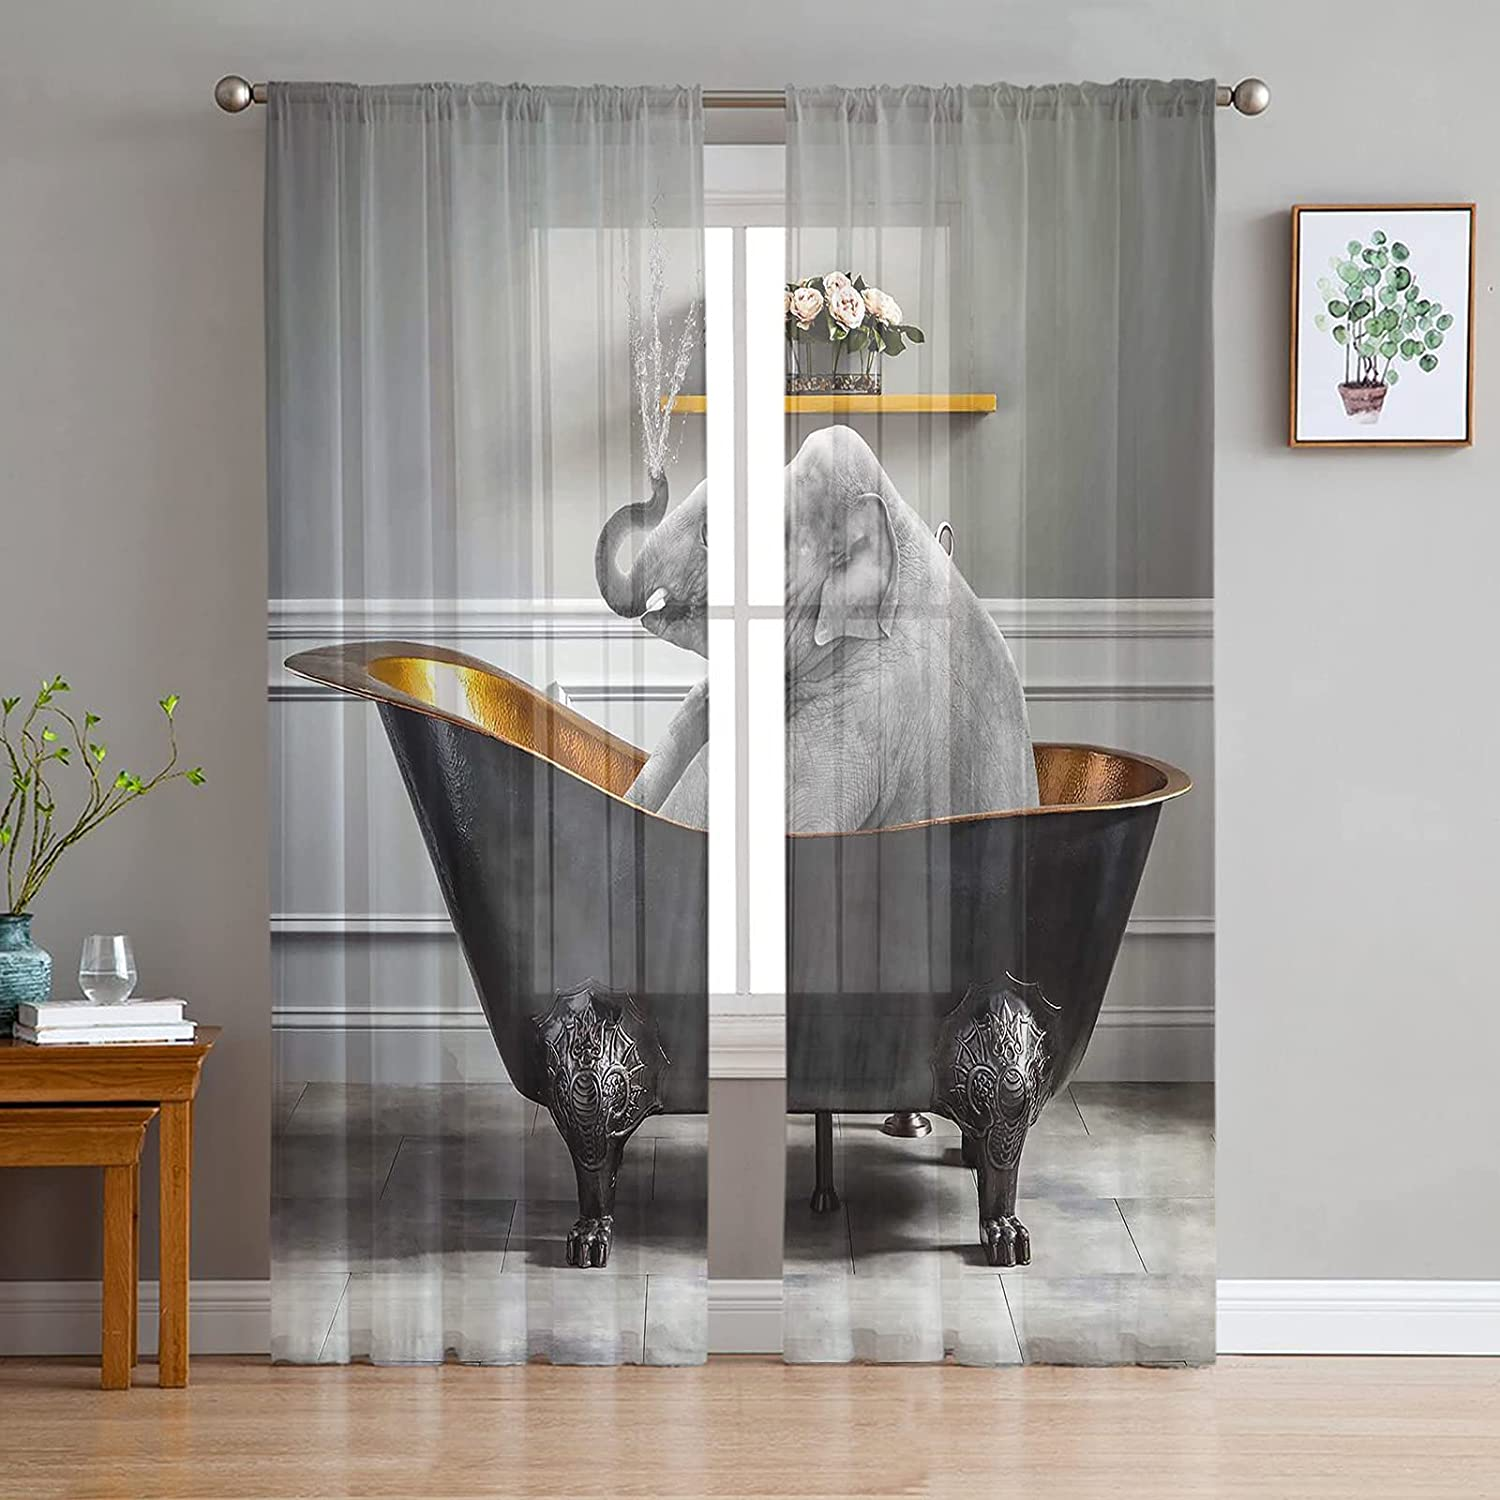 2 Panels Directly managed store Sheer San Antonio Mall Curtains Light Drapes Filtering Elephant African